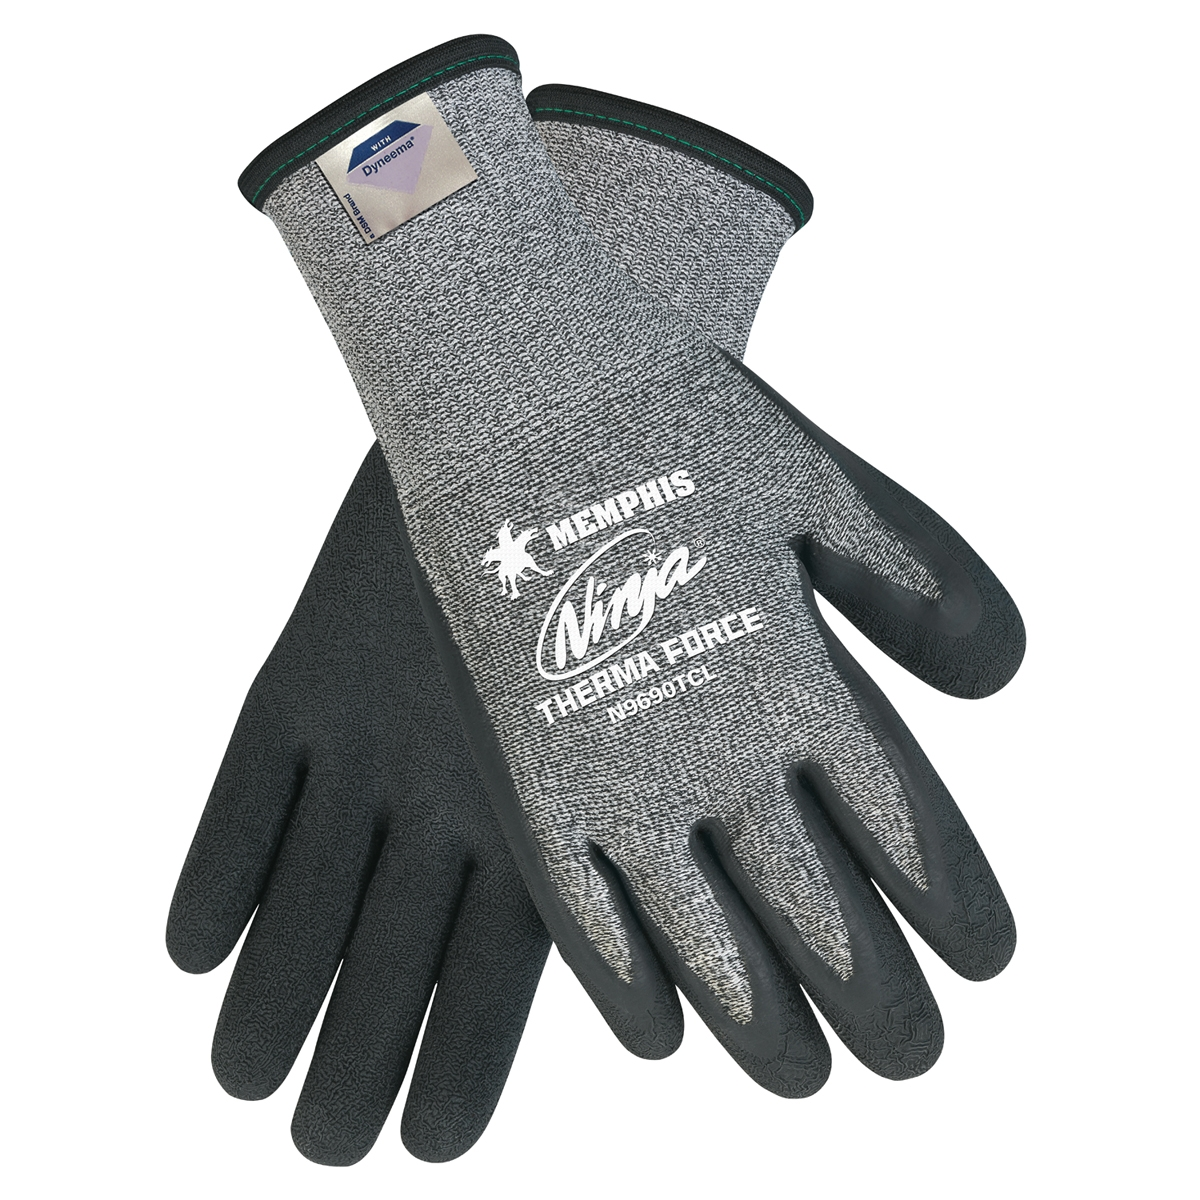 N9690TC : Memphis Ninja Therma Force Gloves - 7 Gauge Arcylic Terry Liner - 13 Gauge Dyneema Liner Outside